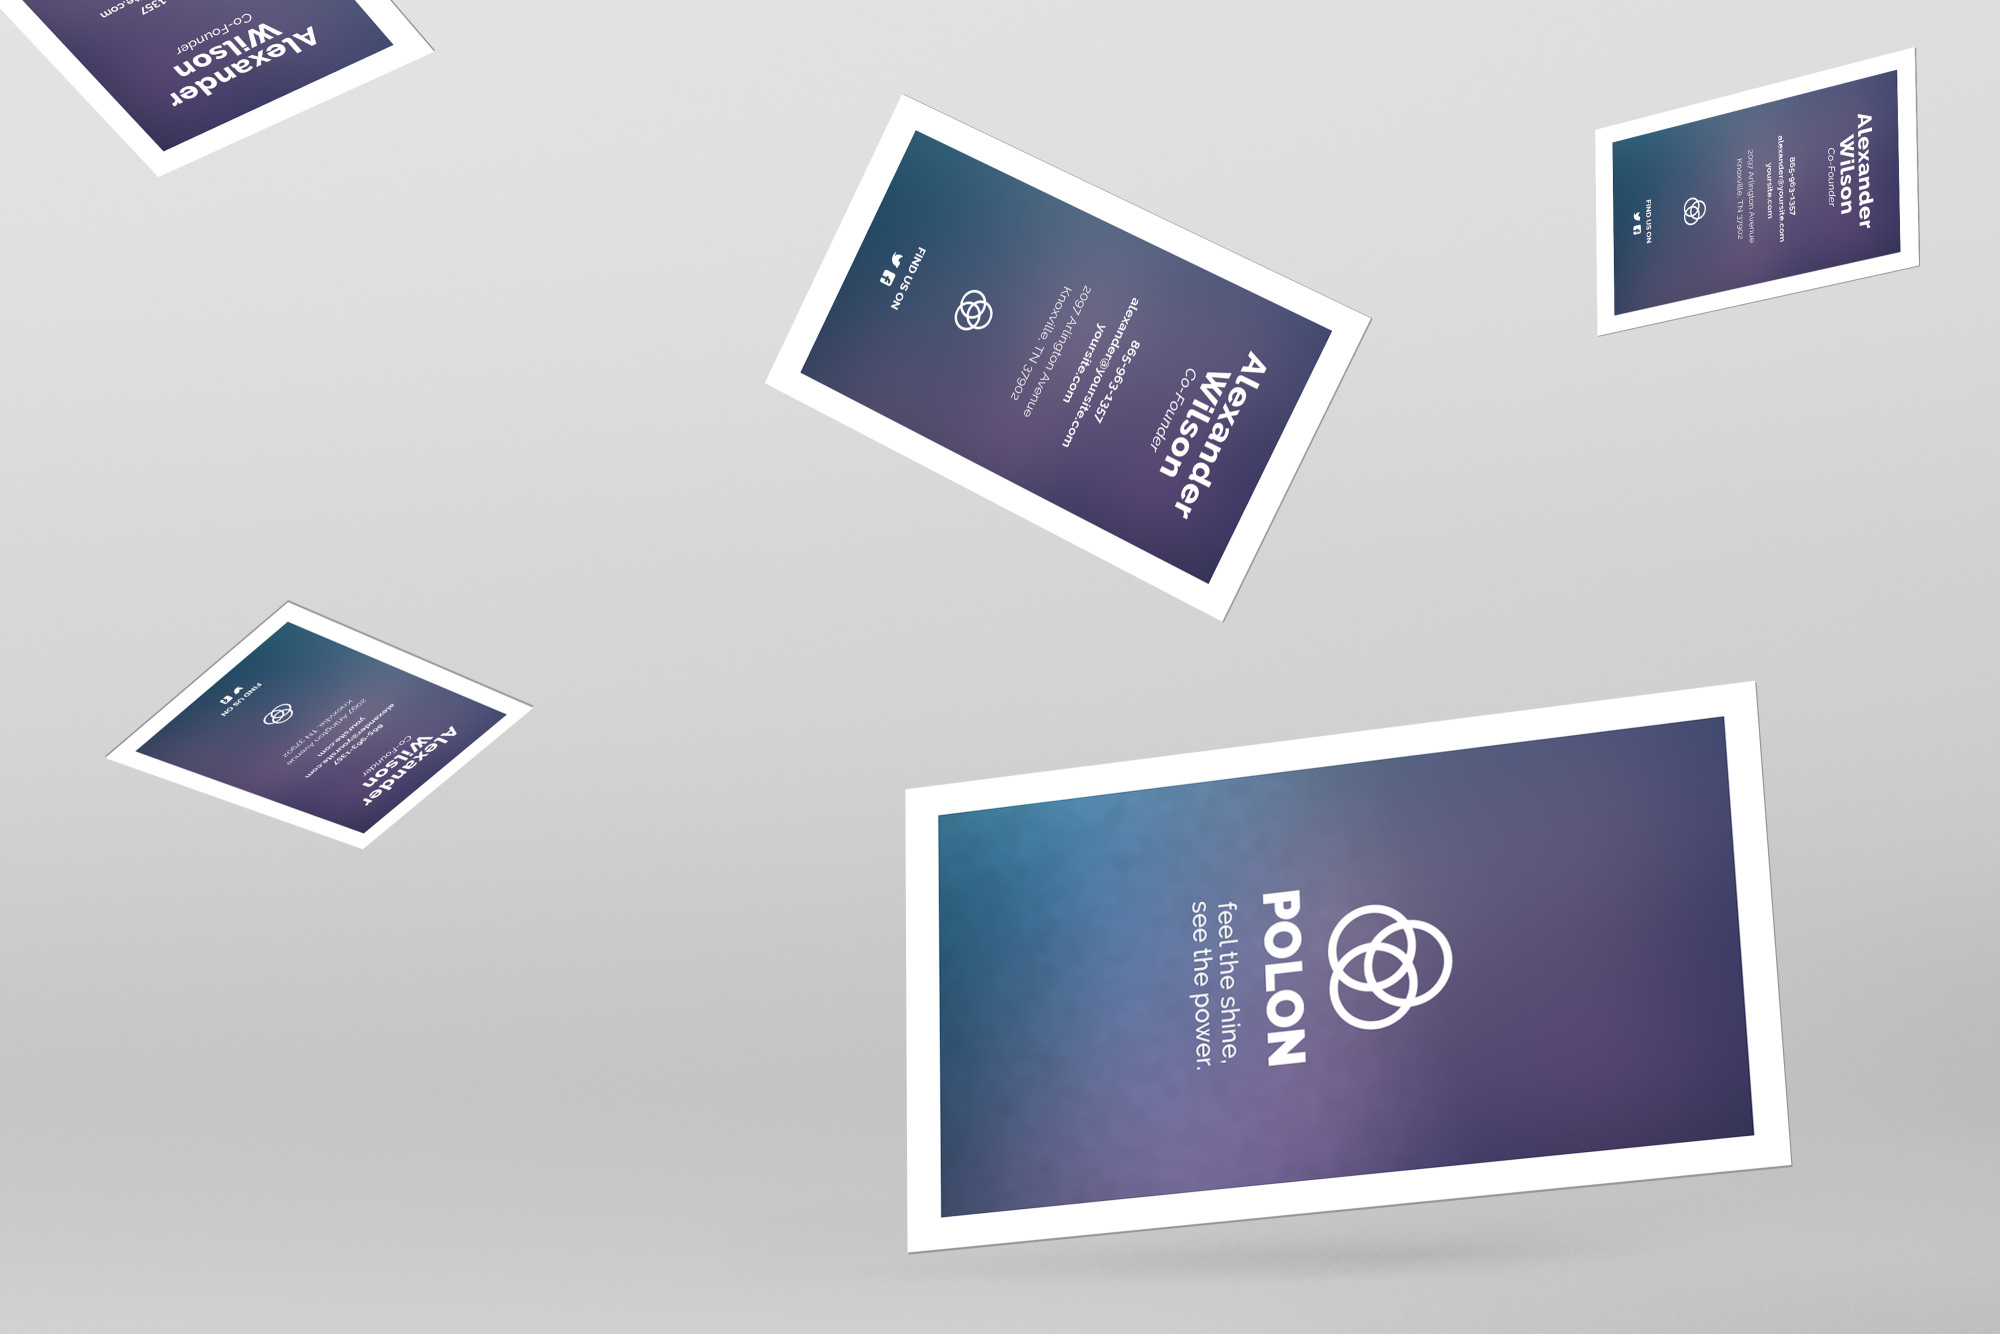 Polon - A Modern Business Card Template example image 2